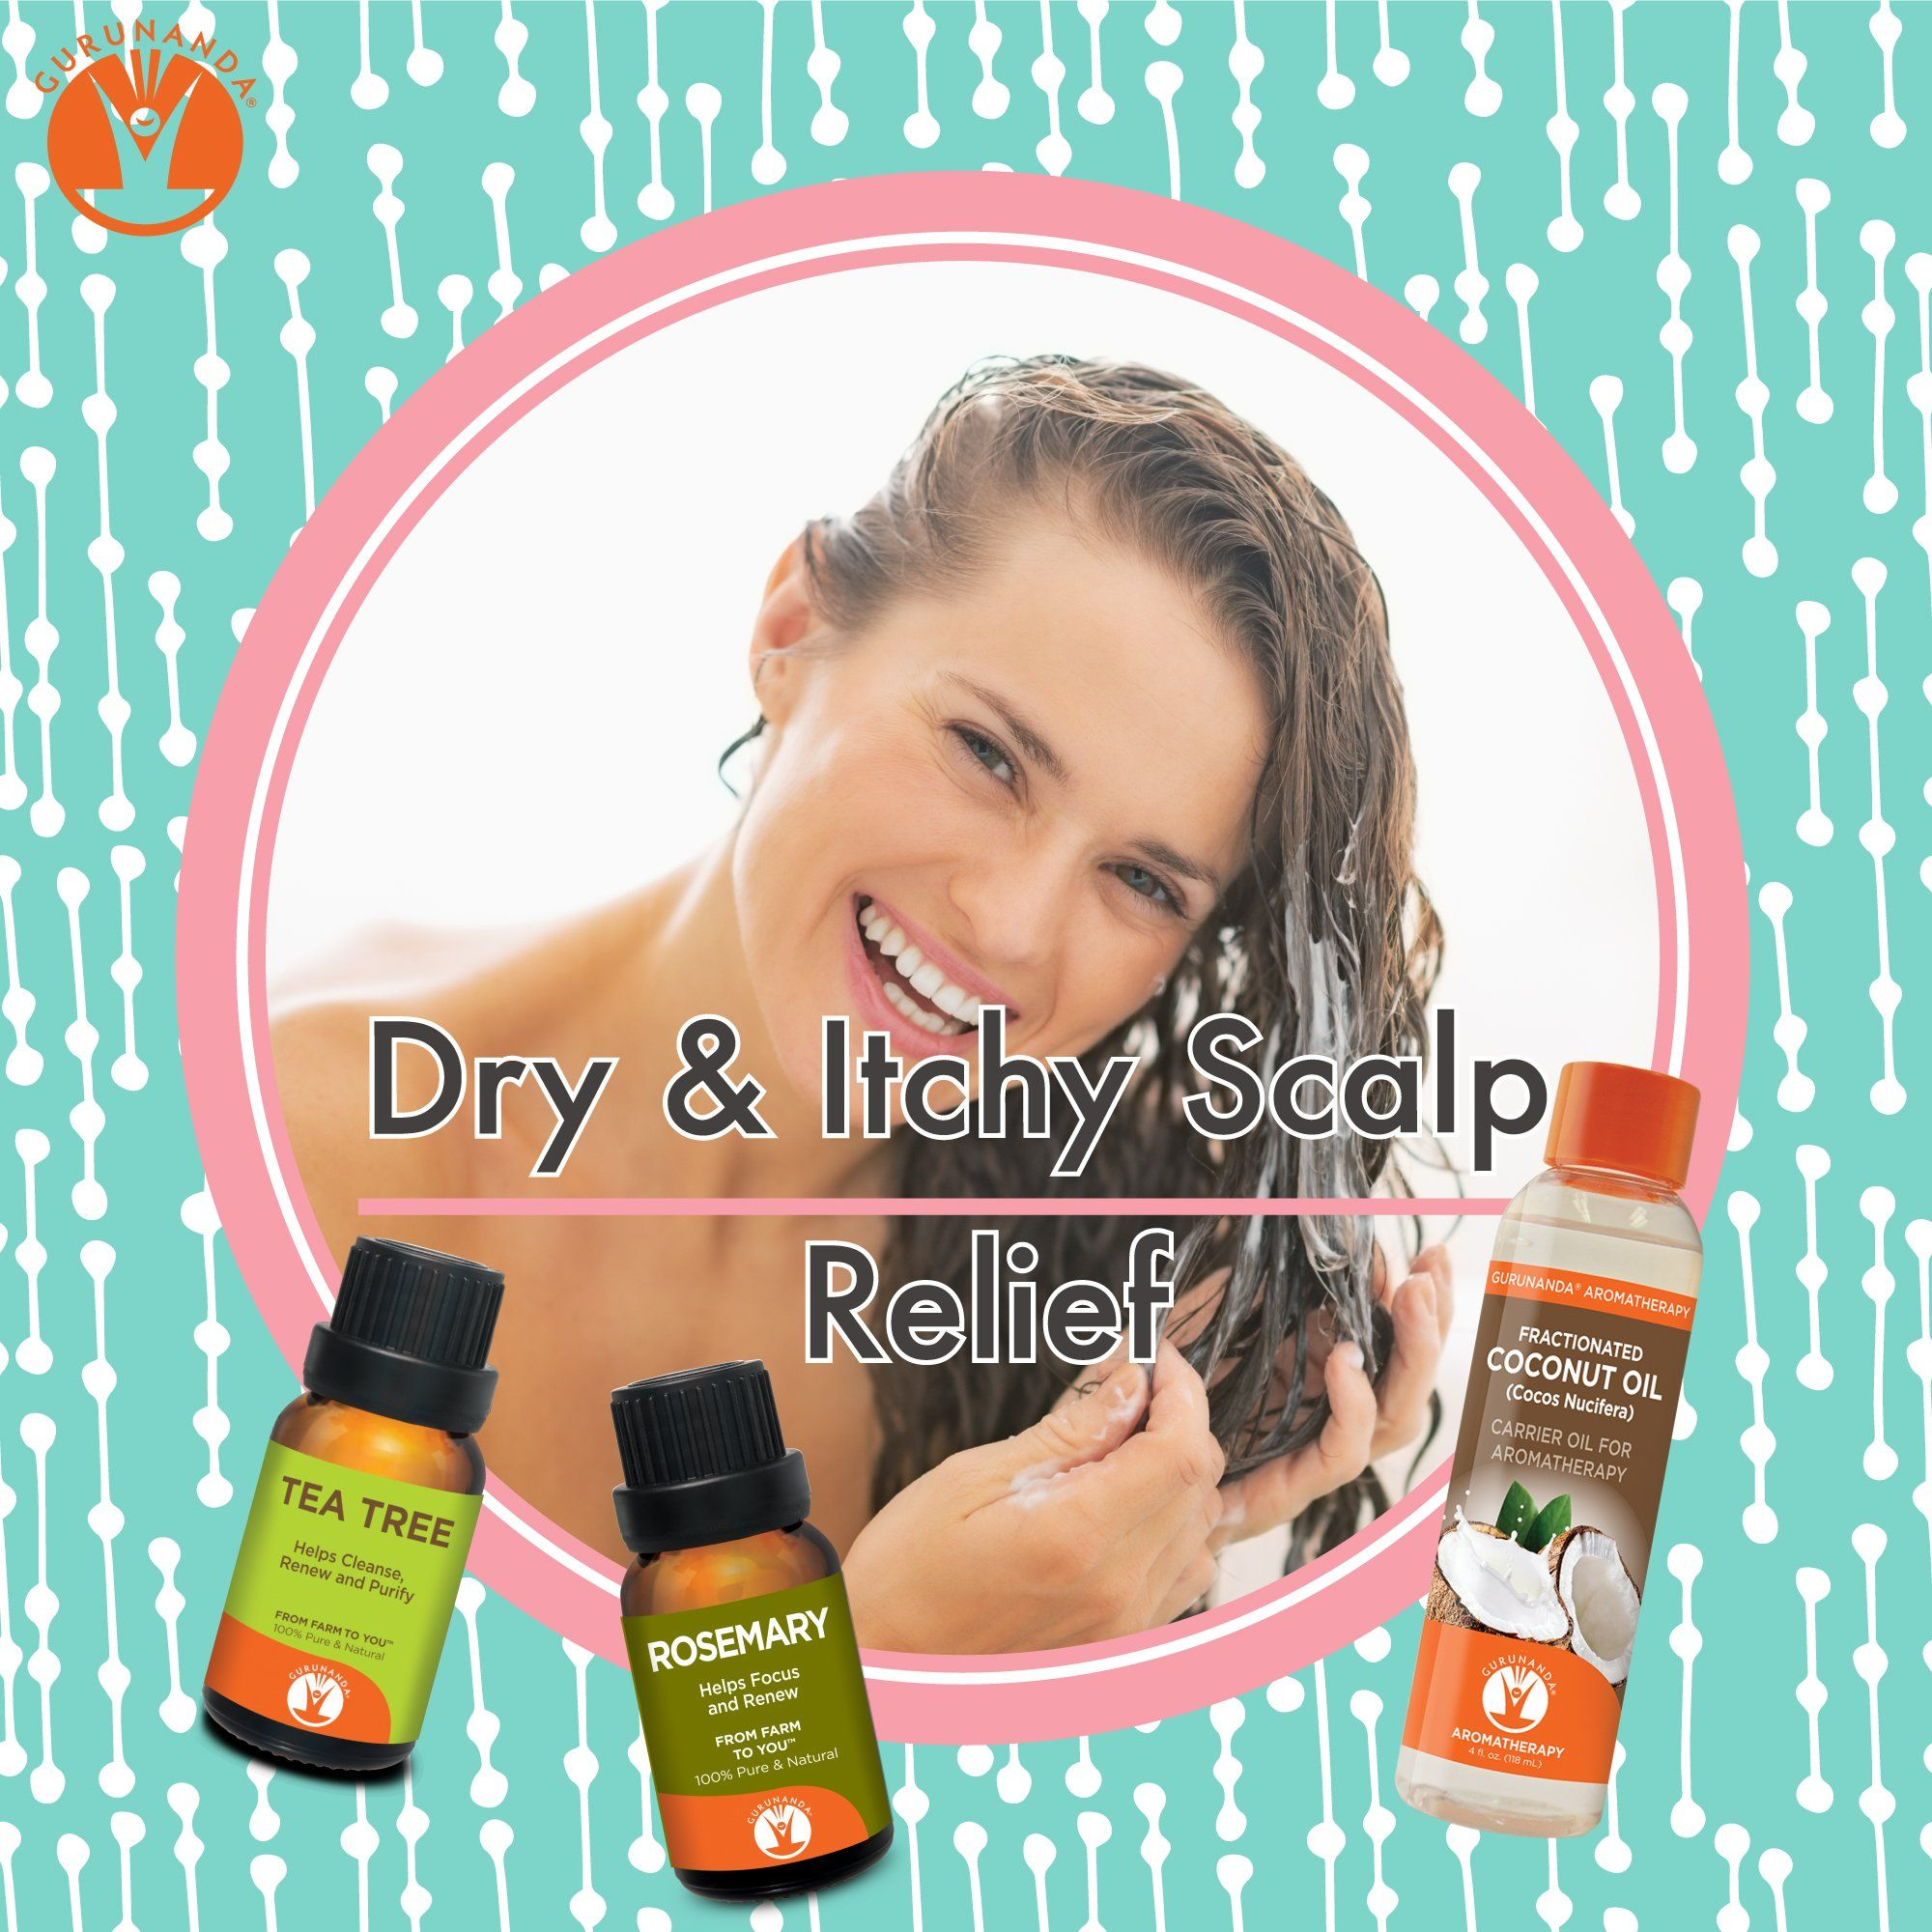 Diy Dry Itchy Scalp Relief Shampoo Dry Itchy Scalp Shampoo